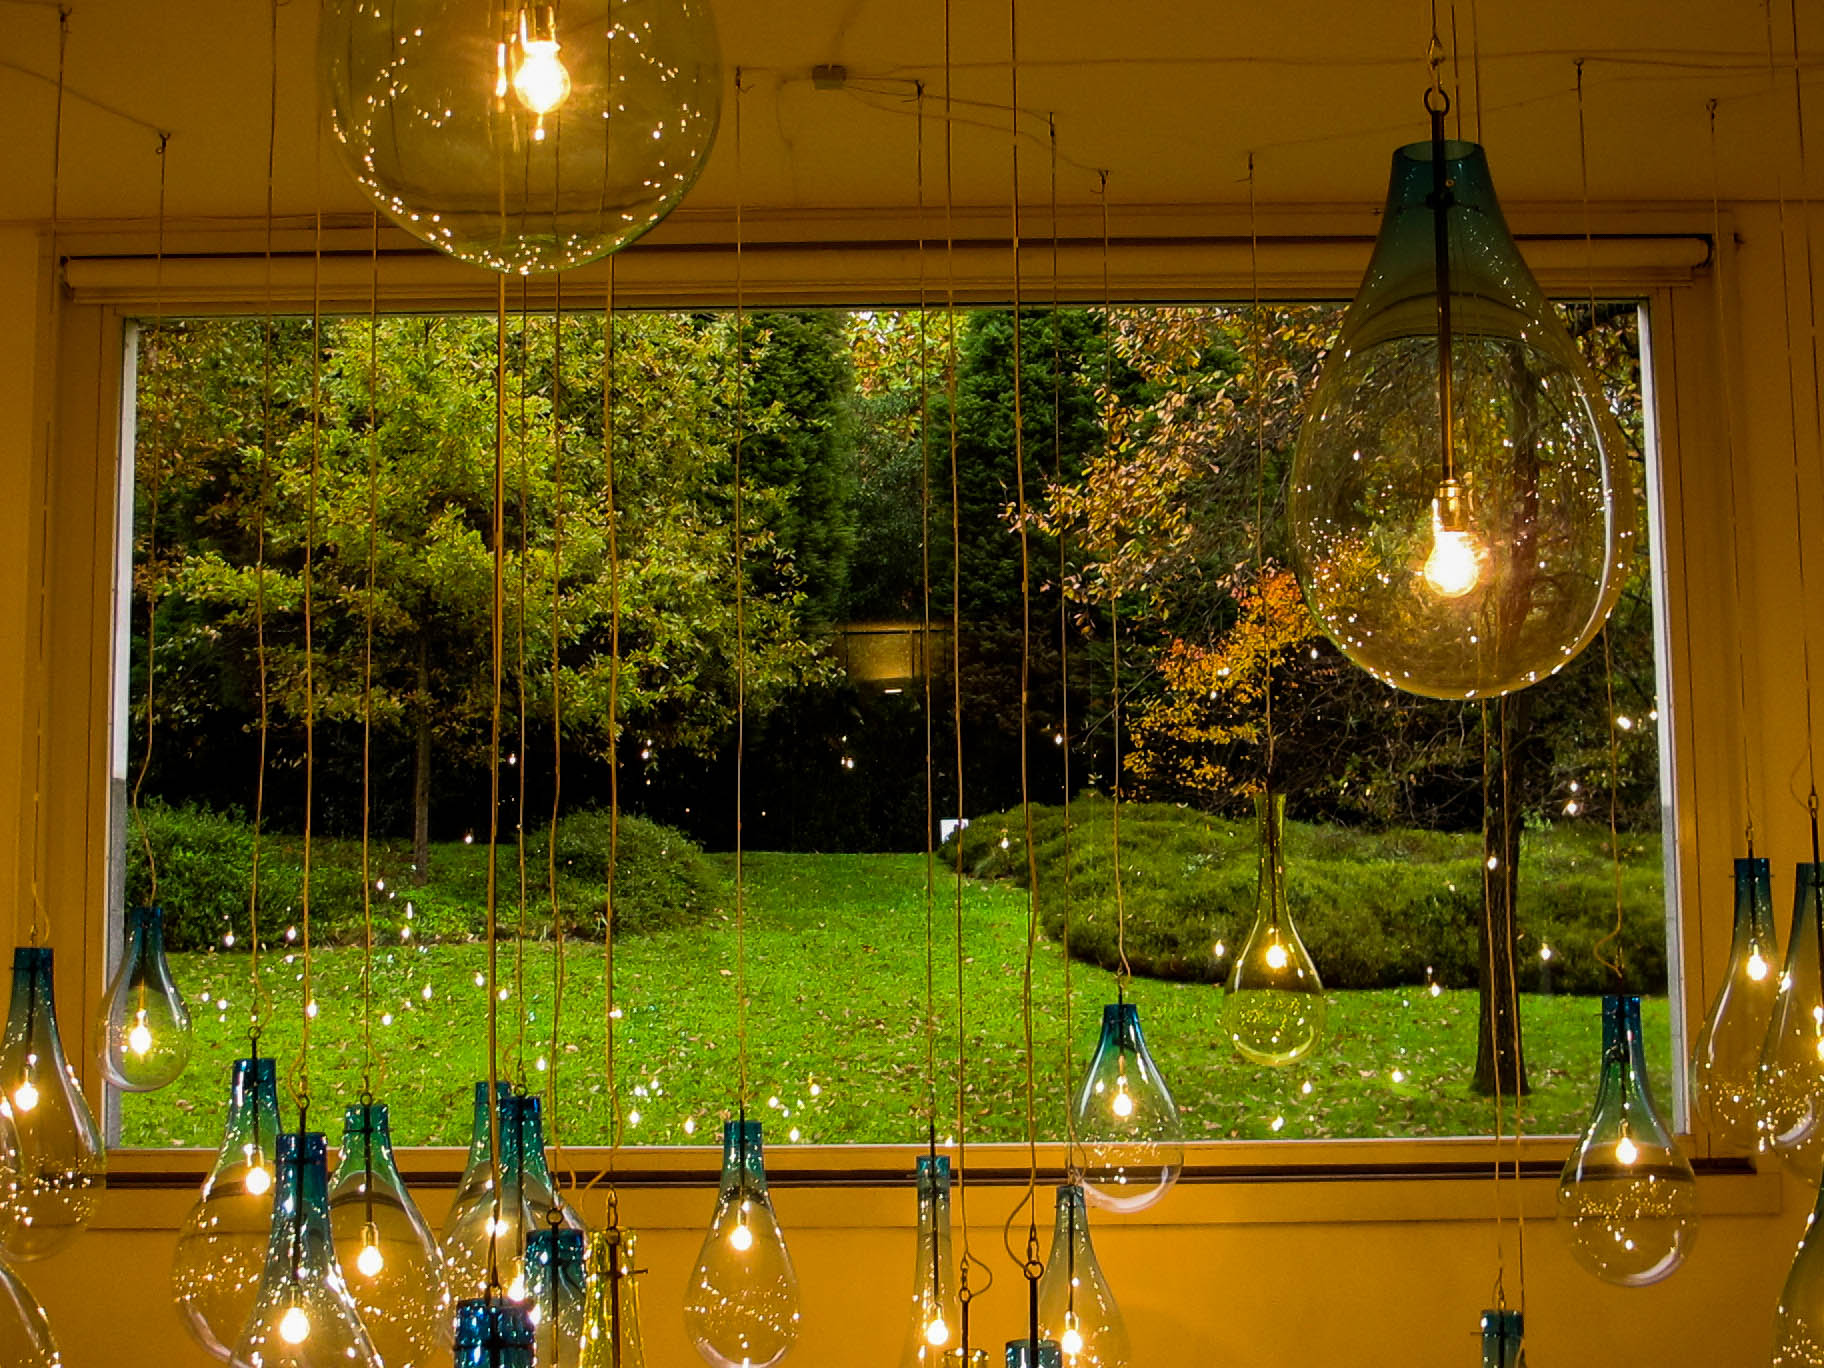 Different size light bulbs hanging in front of a generous window that shows the green park